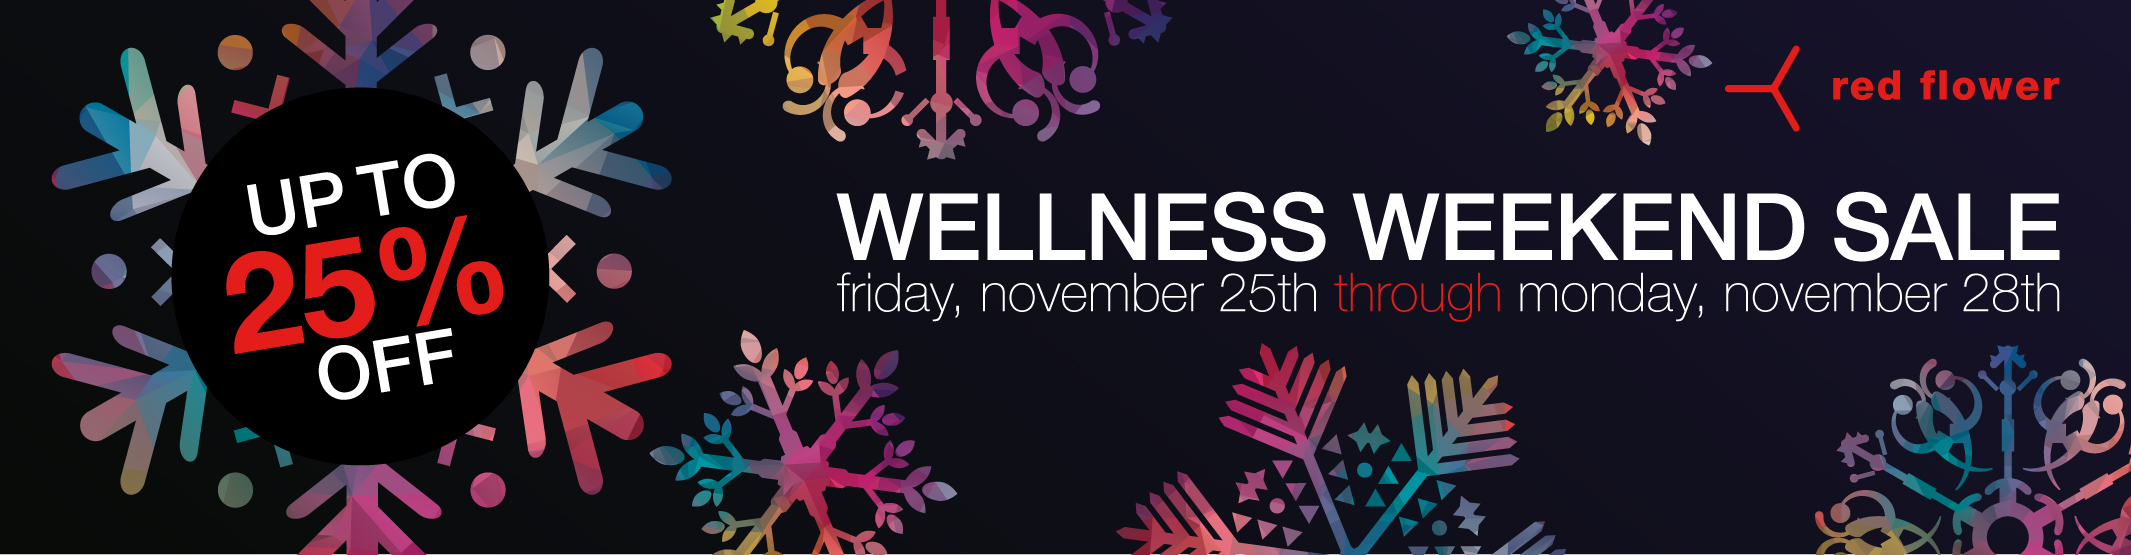 saturday wellness weekend items